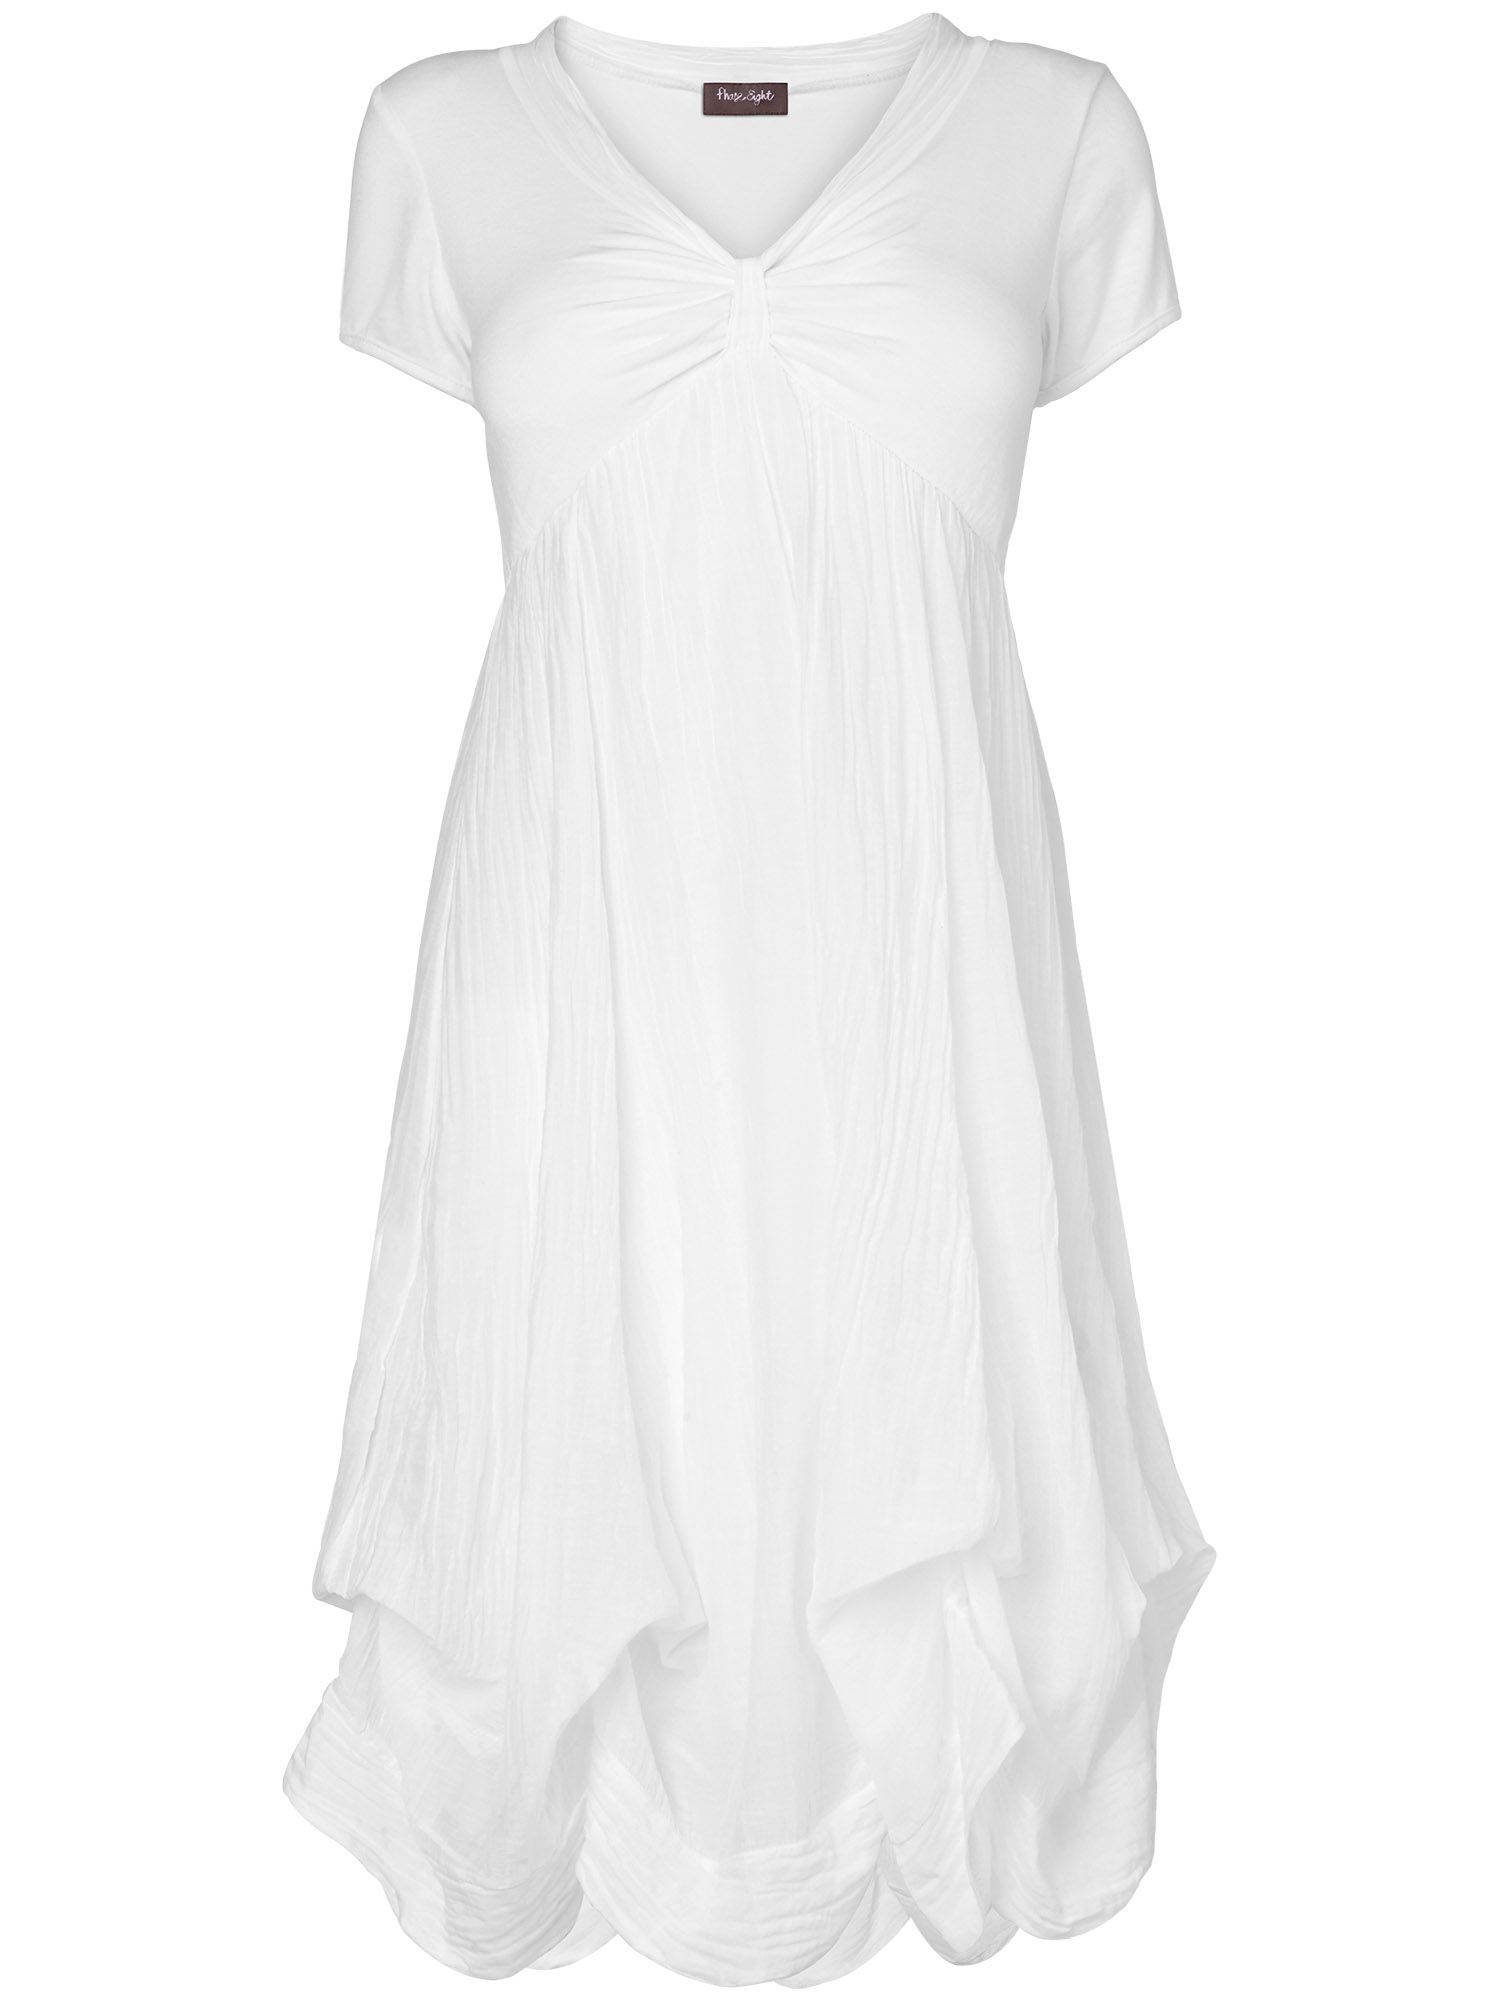 Ruthie short sleeve hook-up dress